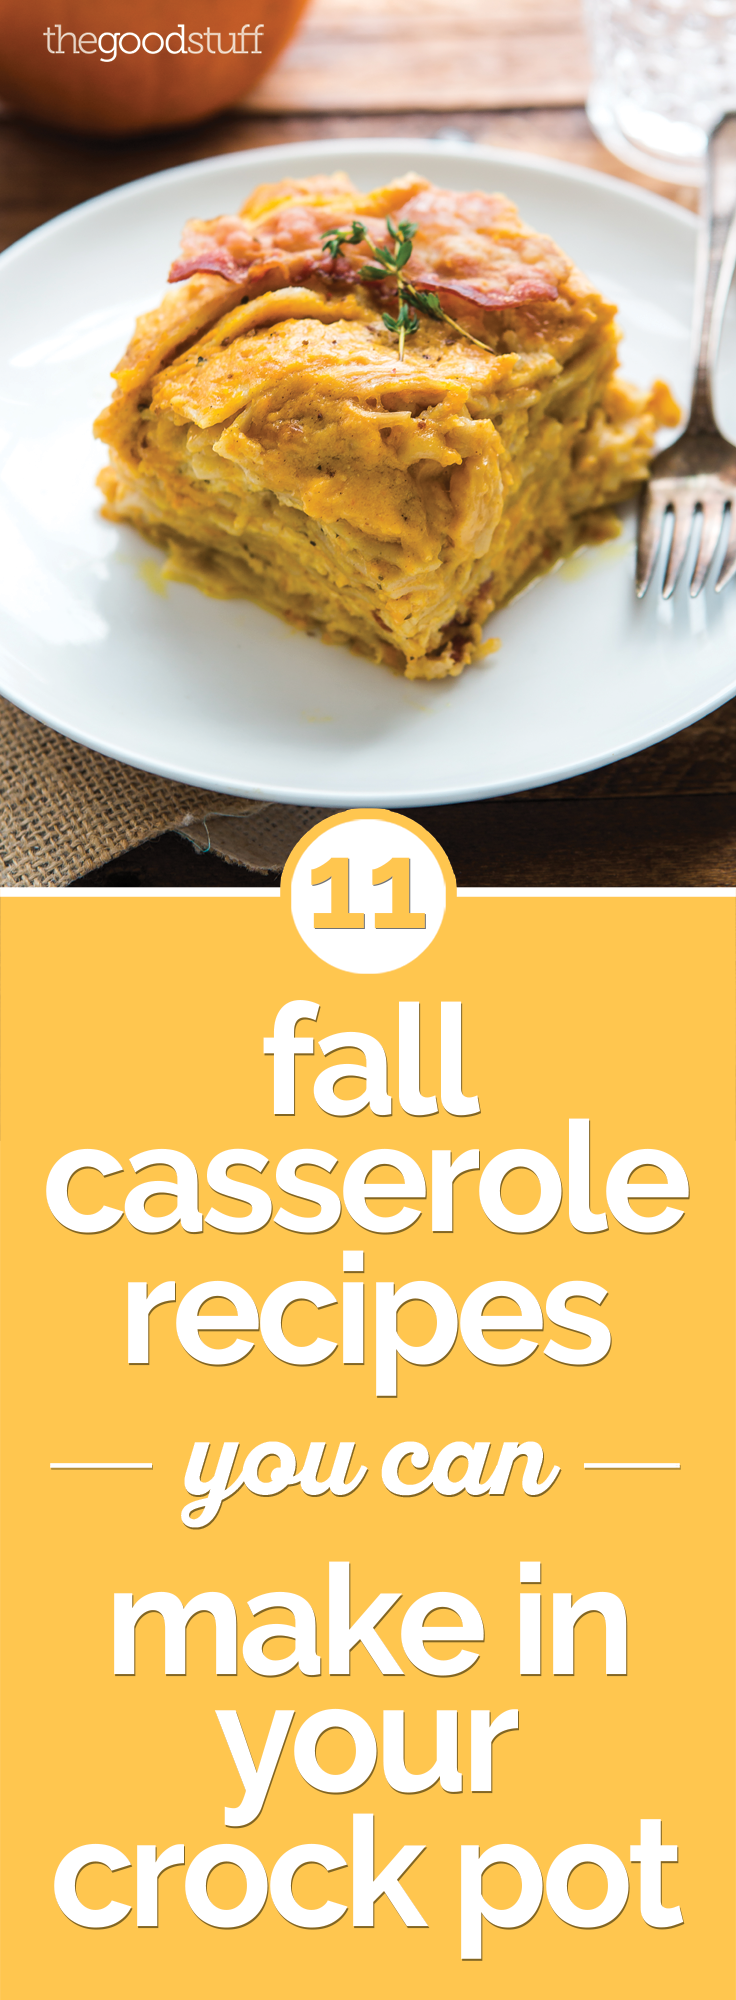 11 Hearty Crock Pot Casserole Recipes for Busy Fall Nights | thegoodstuff